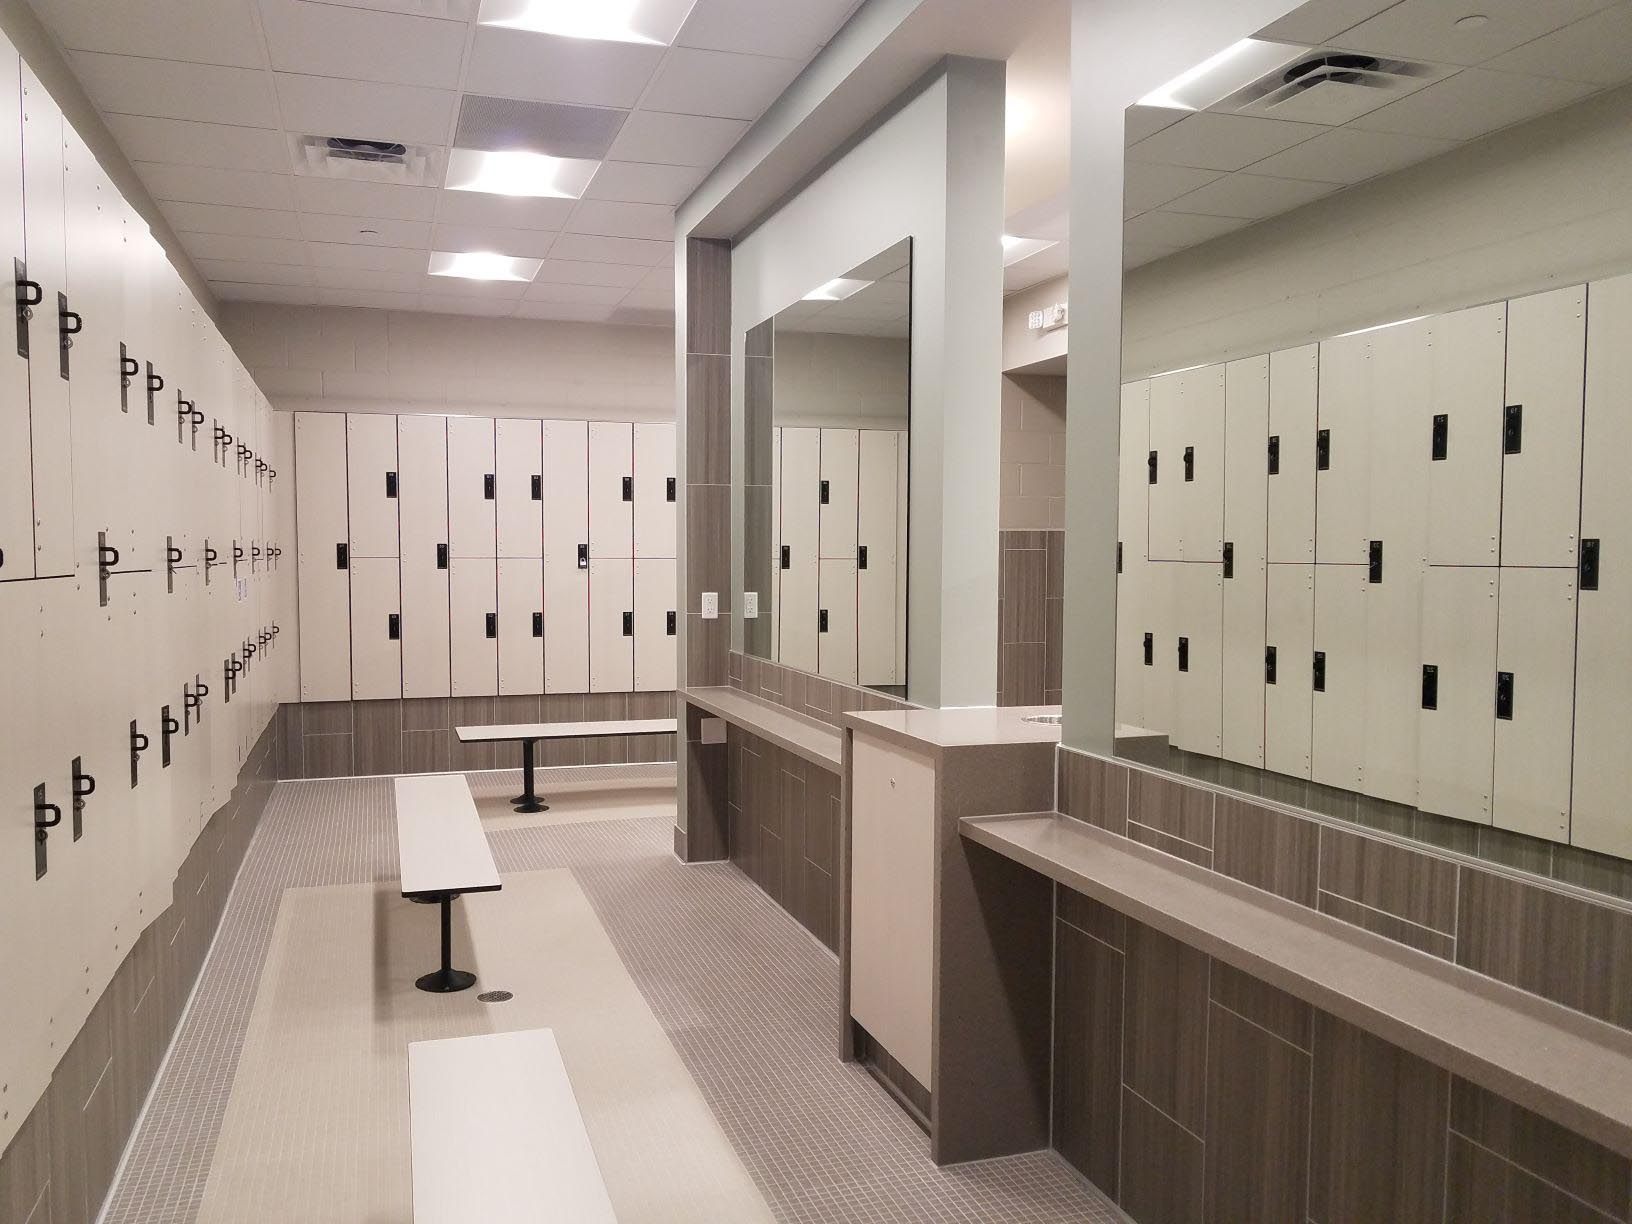 Modern off white lockers, off white floor tile and counter, mirrors, brown benches.